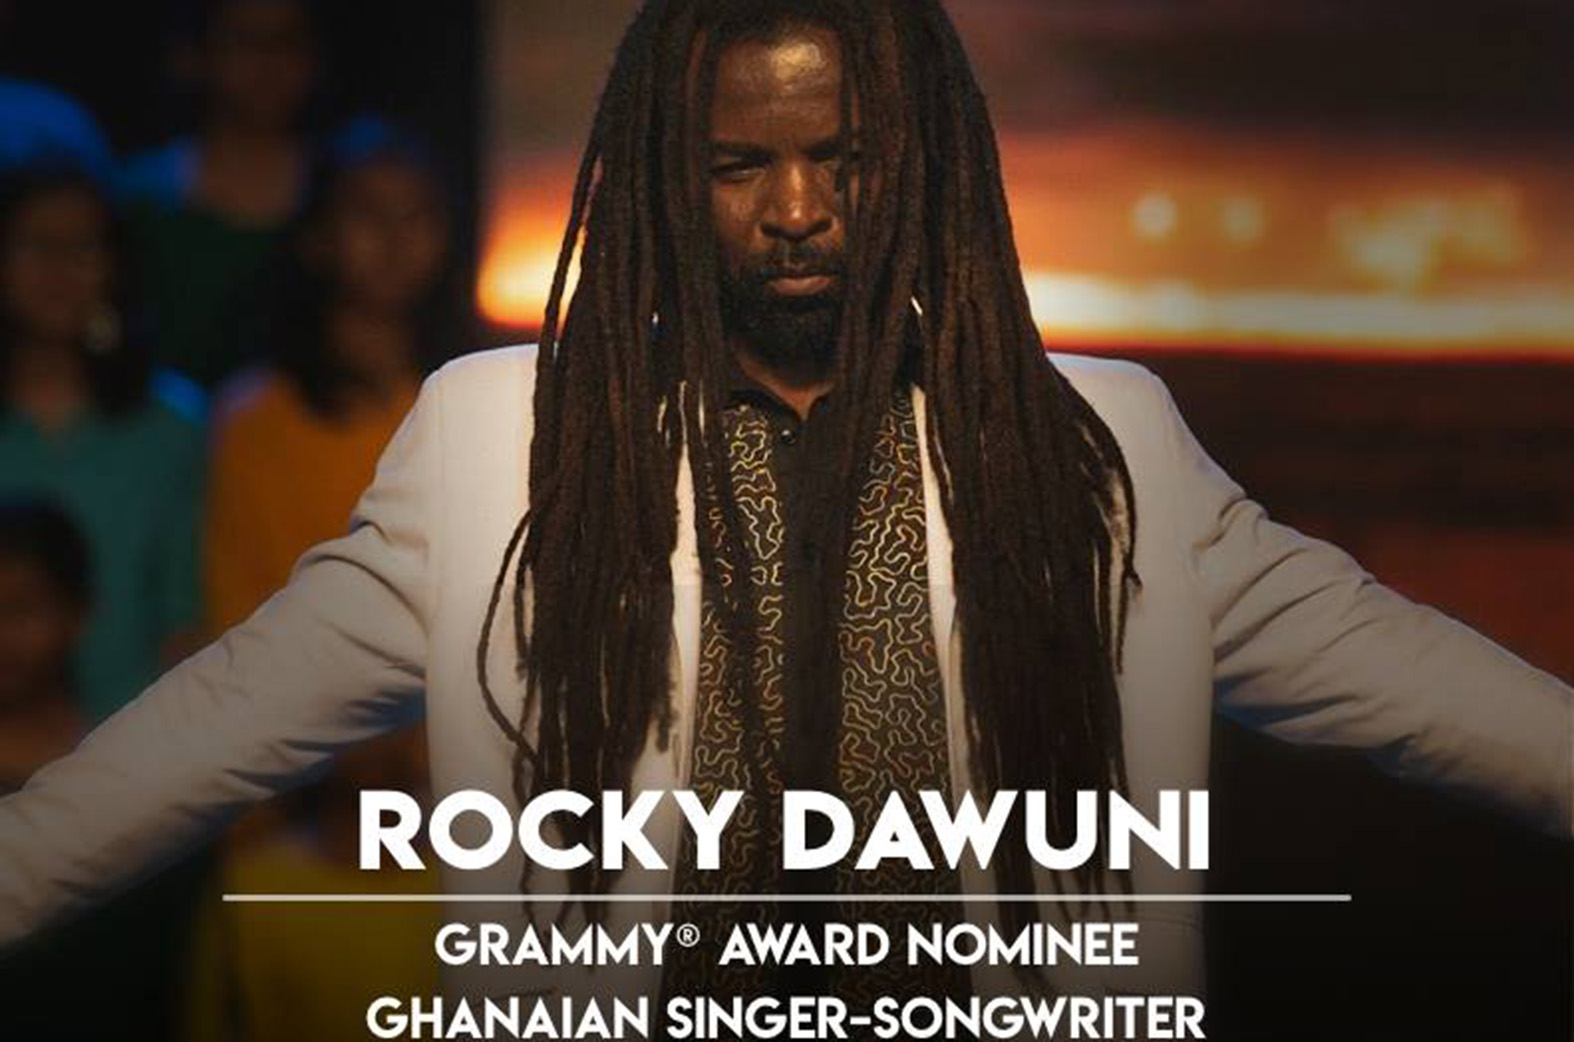 Rocky Dawuni to perform at the RoundGlass Music Awards